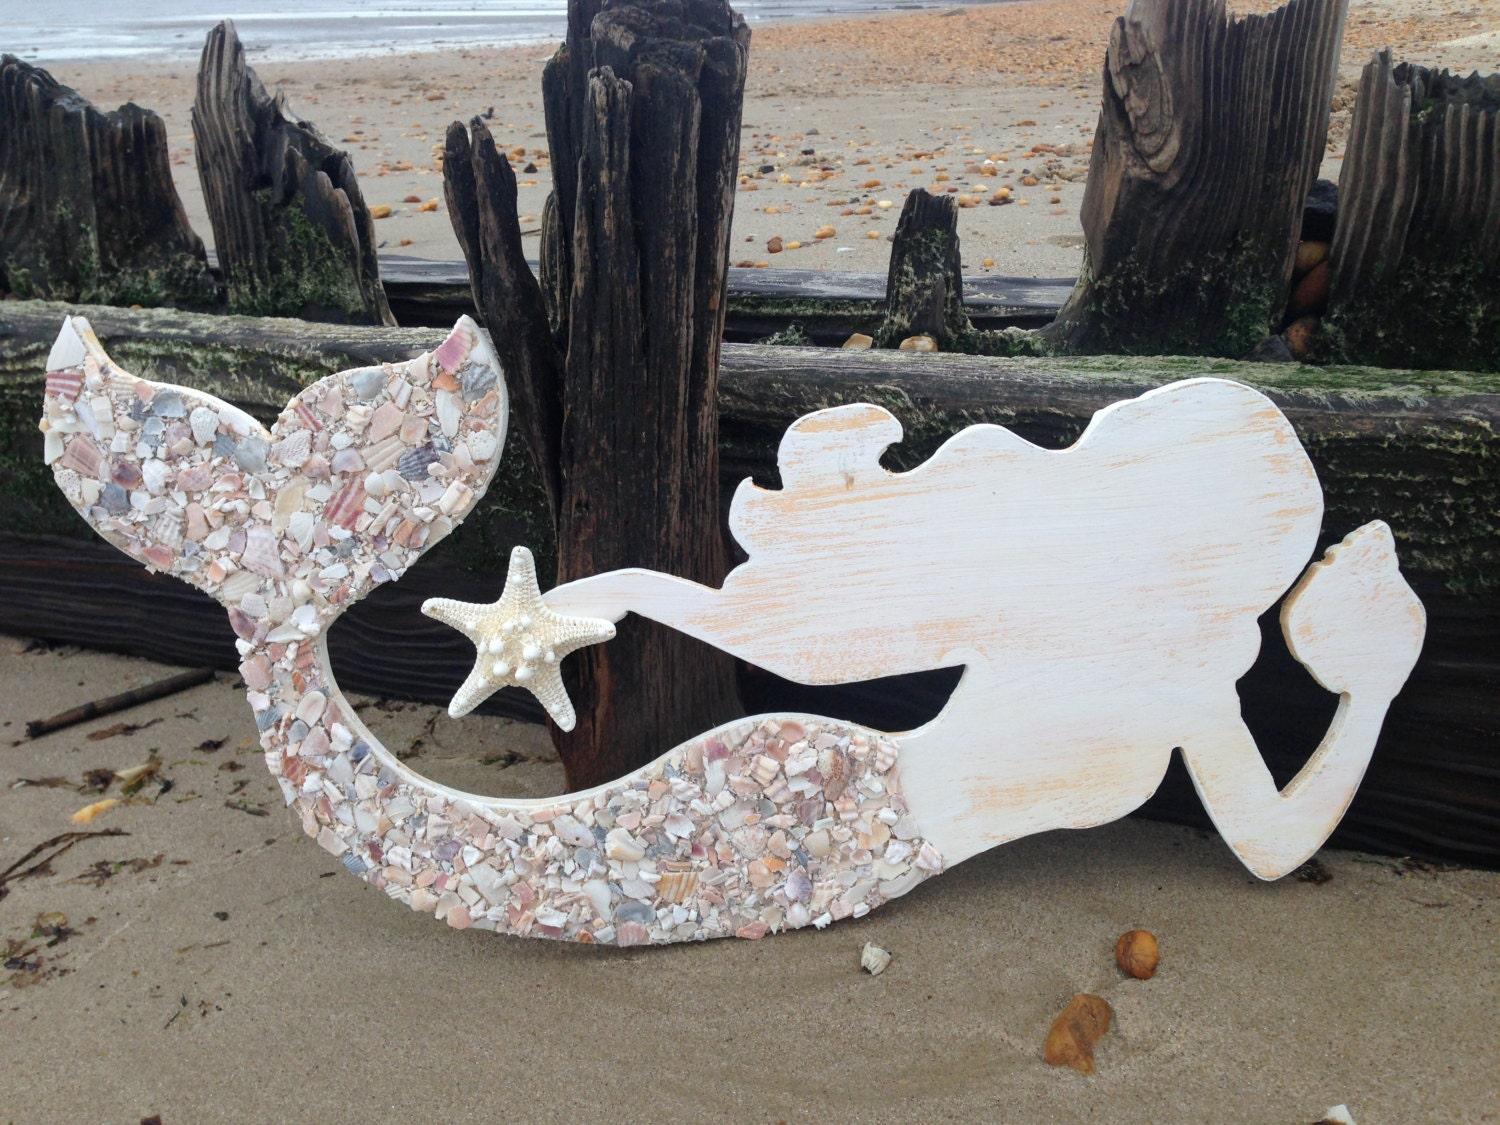 Wood Mermaid Mermaid Art Mermaids Mermaid Shell Art